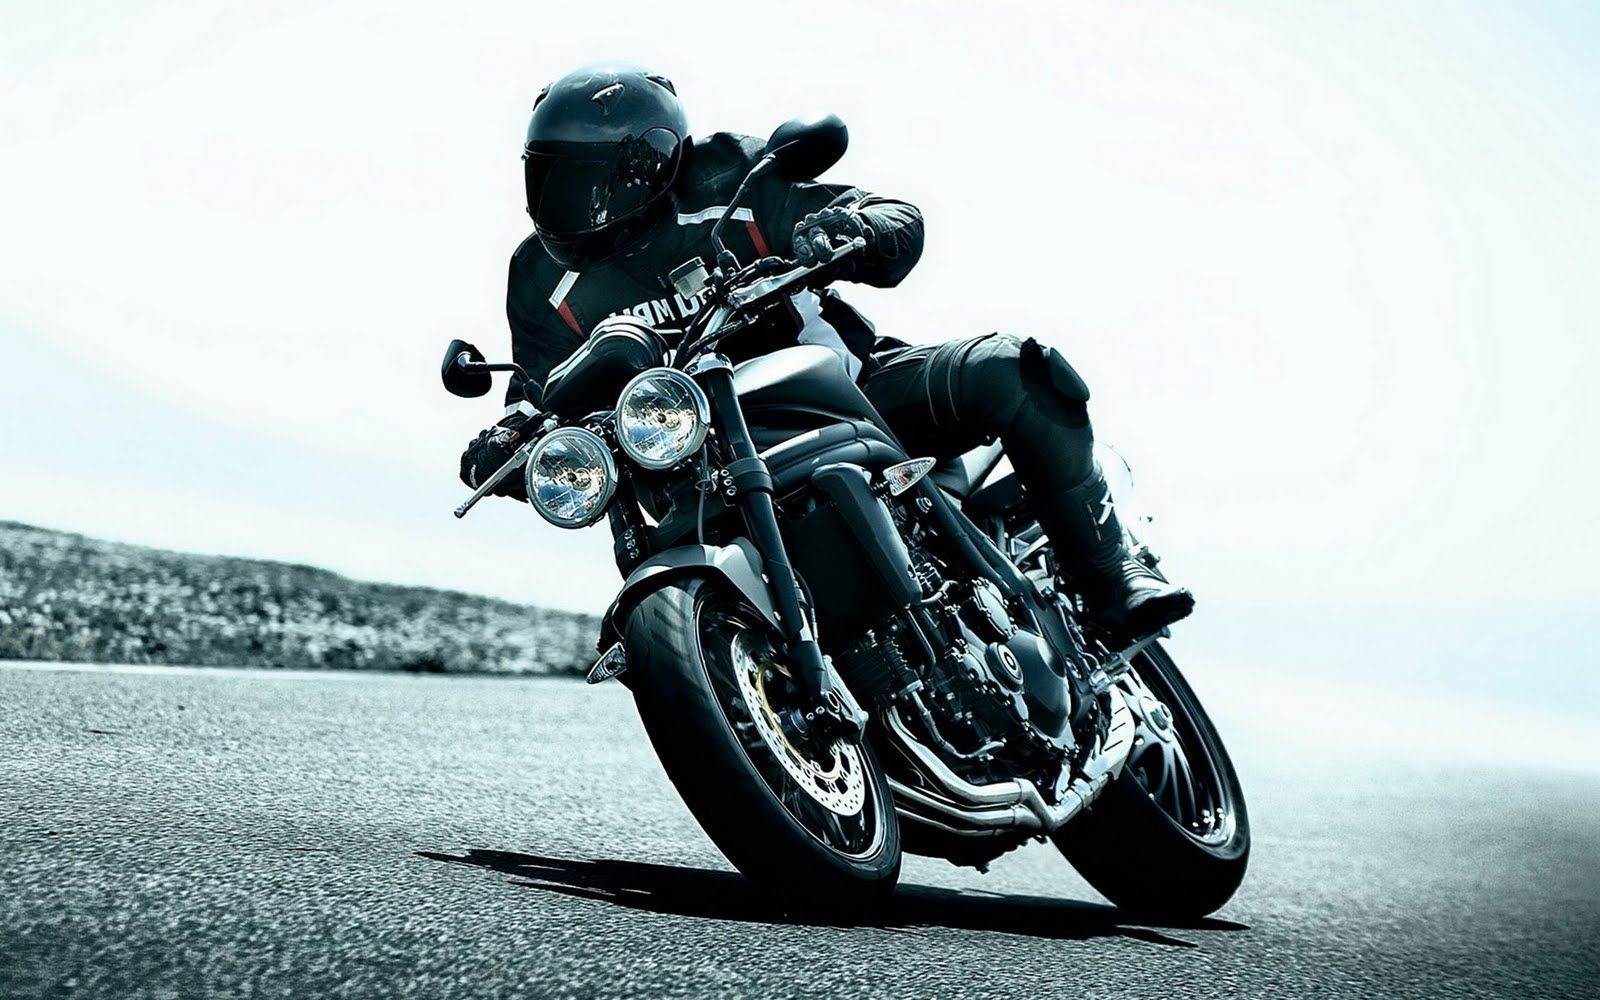 motorcycle wallpapers hd wallpaper | hd wallpapers | pinterest